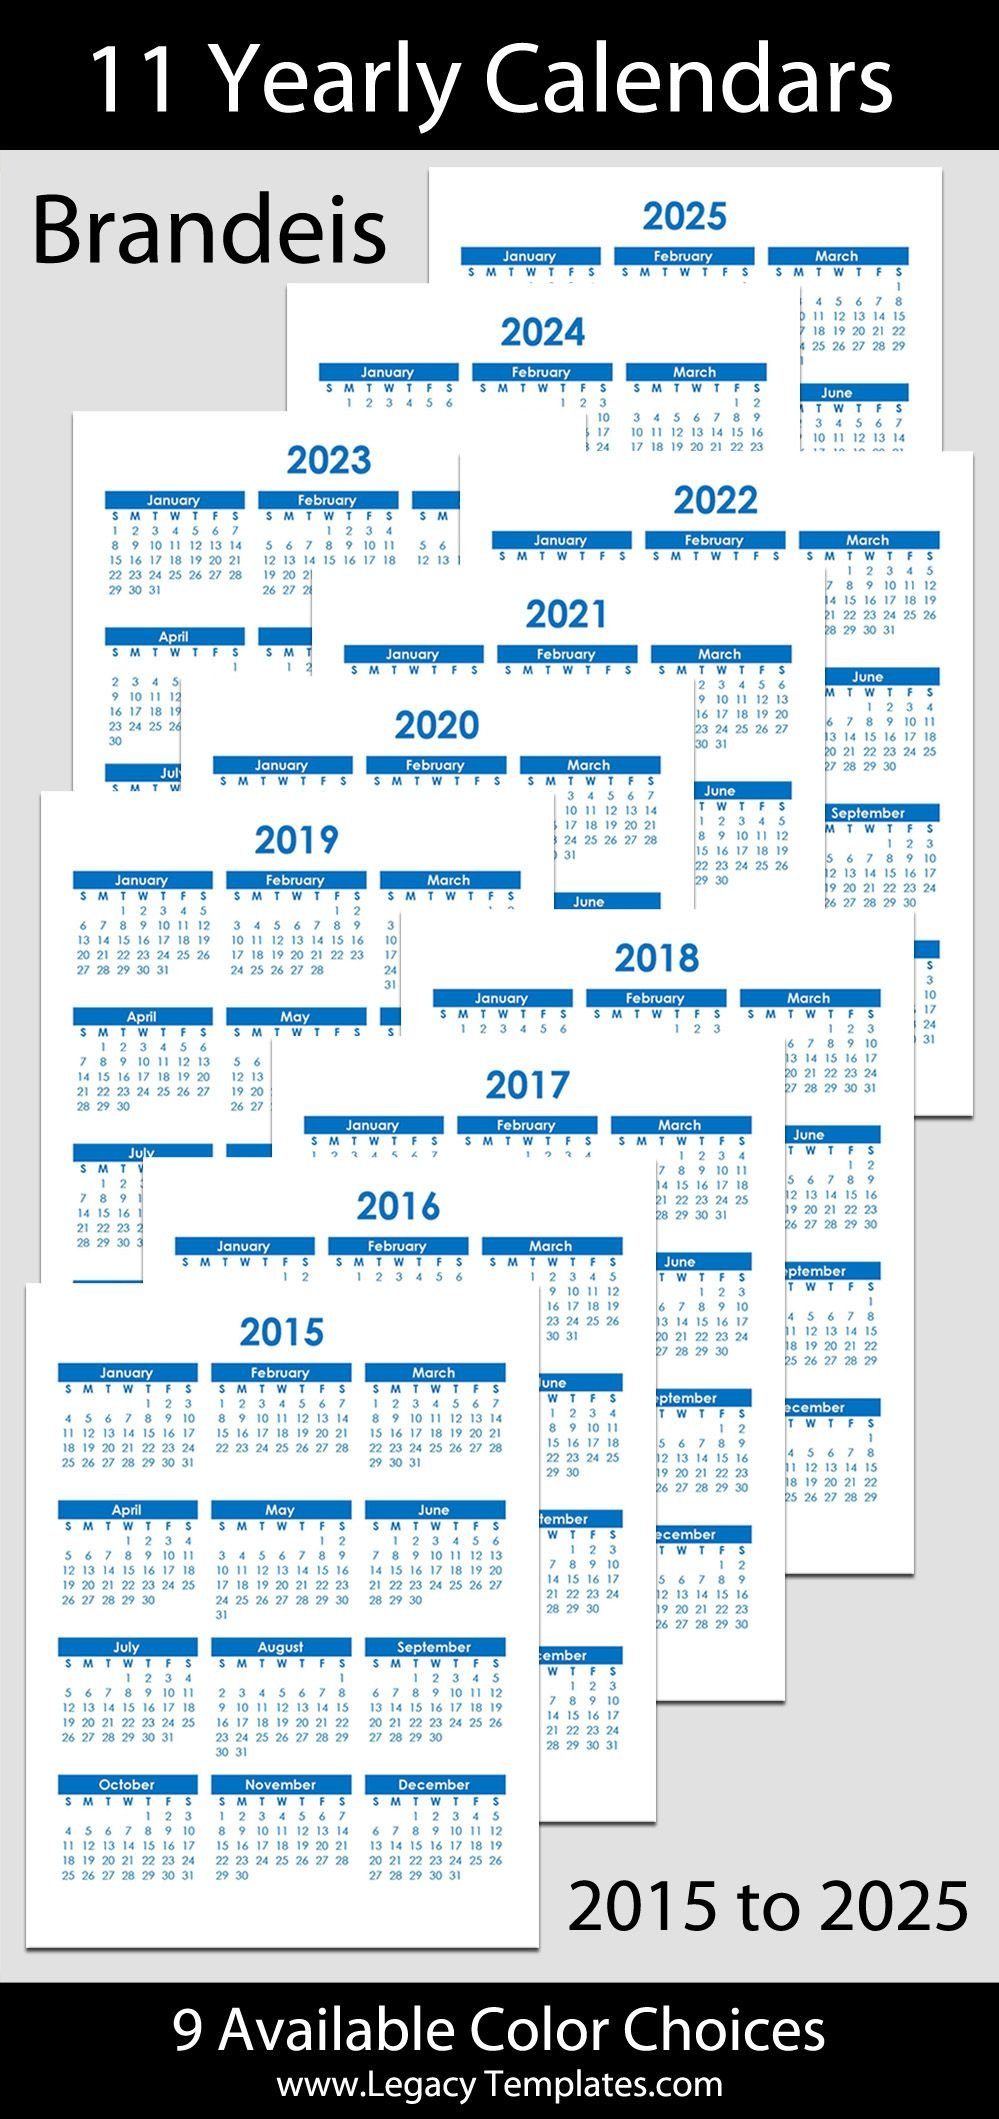 2015 To 2025 Printable Yearly Calendars – Letter Size – 8 8 And 1/2 By 11 Monthly Printabe Calendar